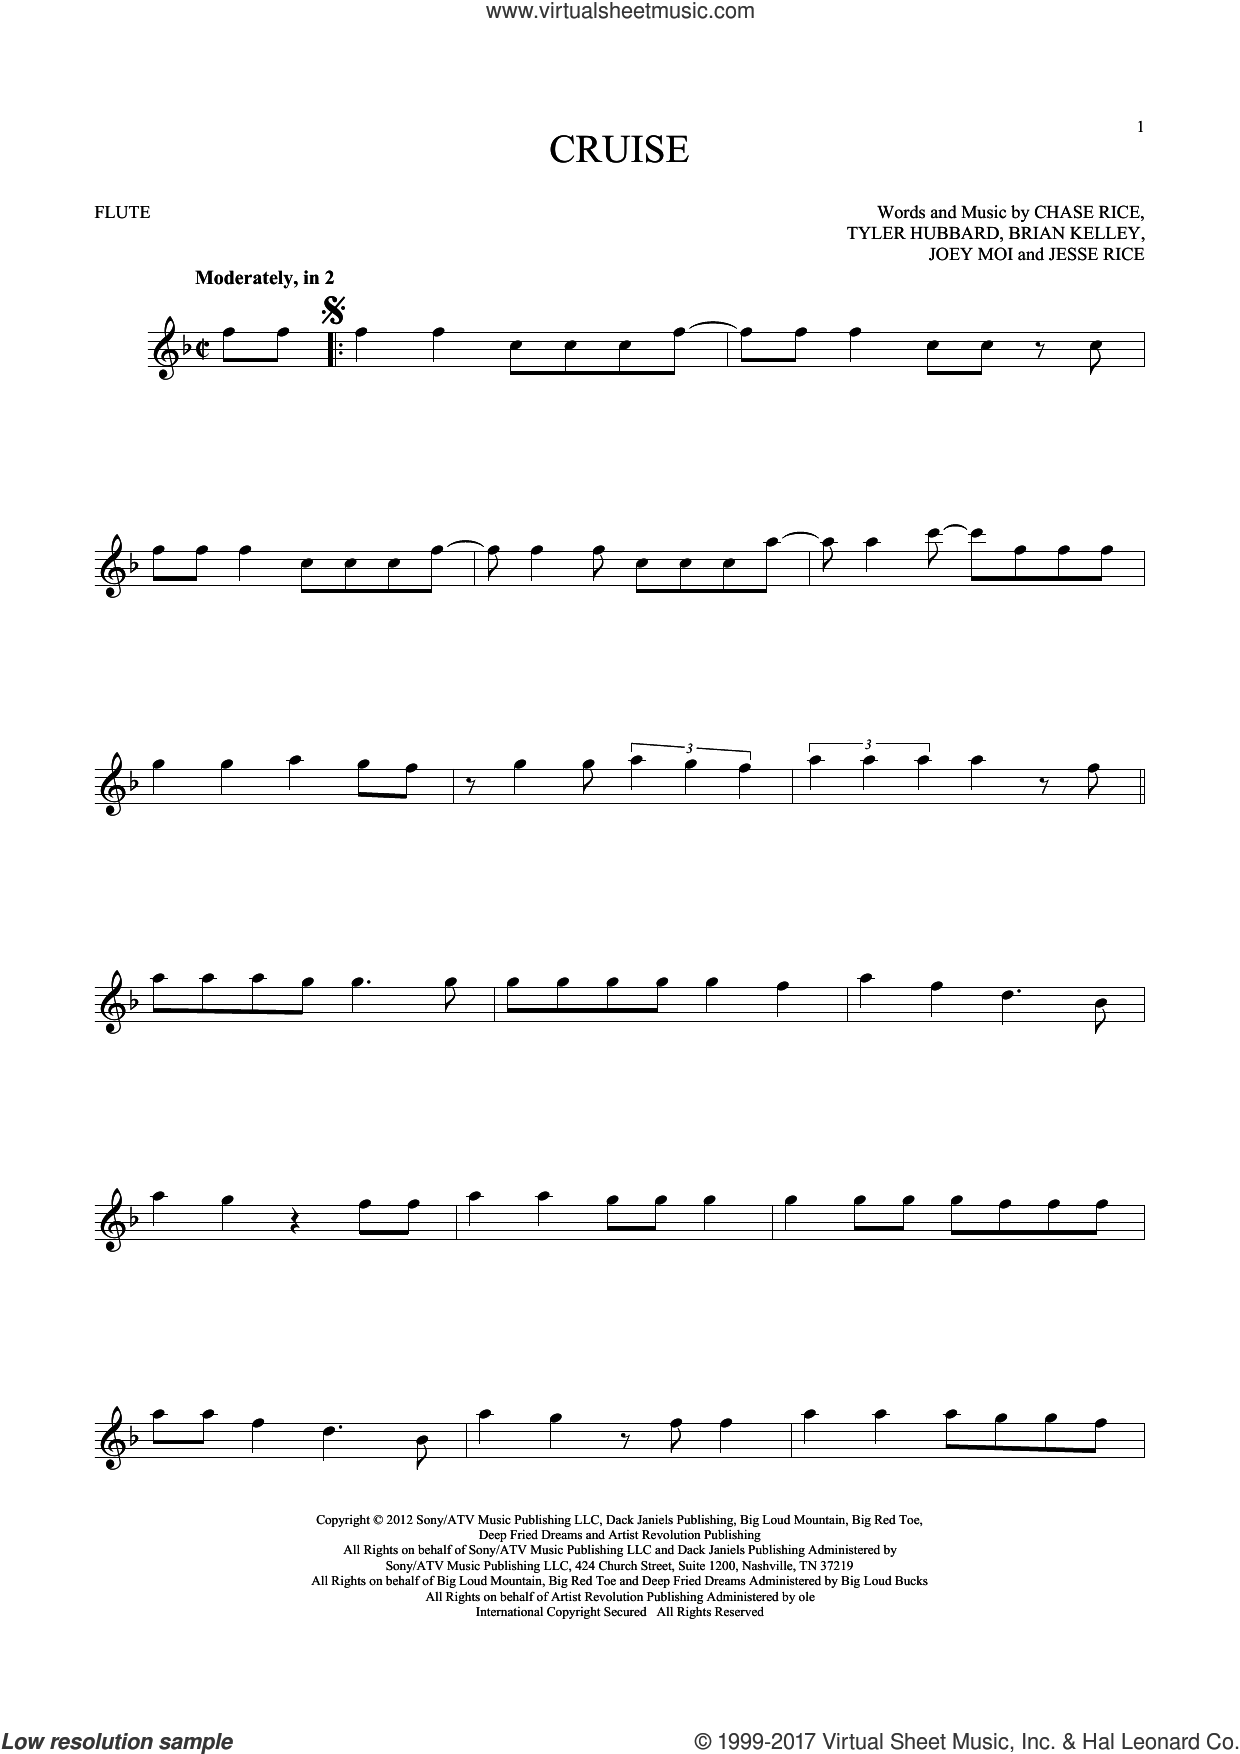 Cruise sheet music for flute solo by Florida Georgia Line, Brian Kelley, Chase Rice, Jesse Rice, Joey Moi and Tyler Hubbard, intermediate skill level